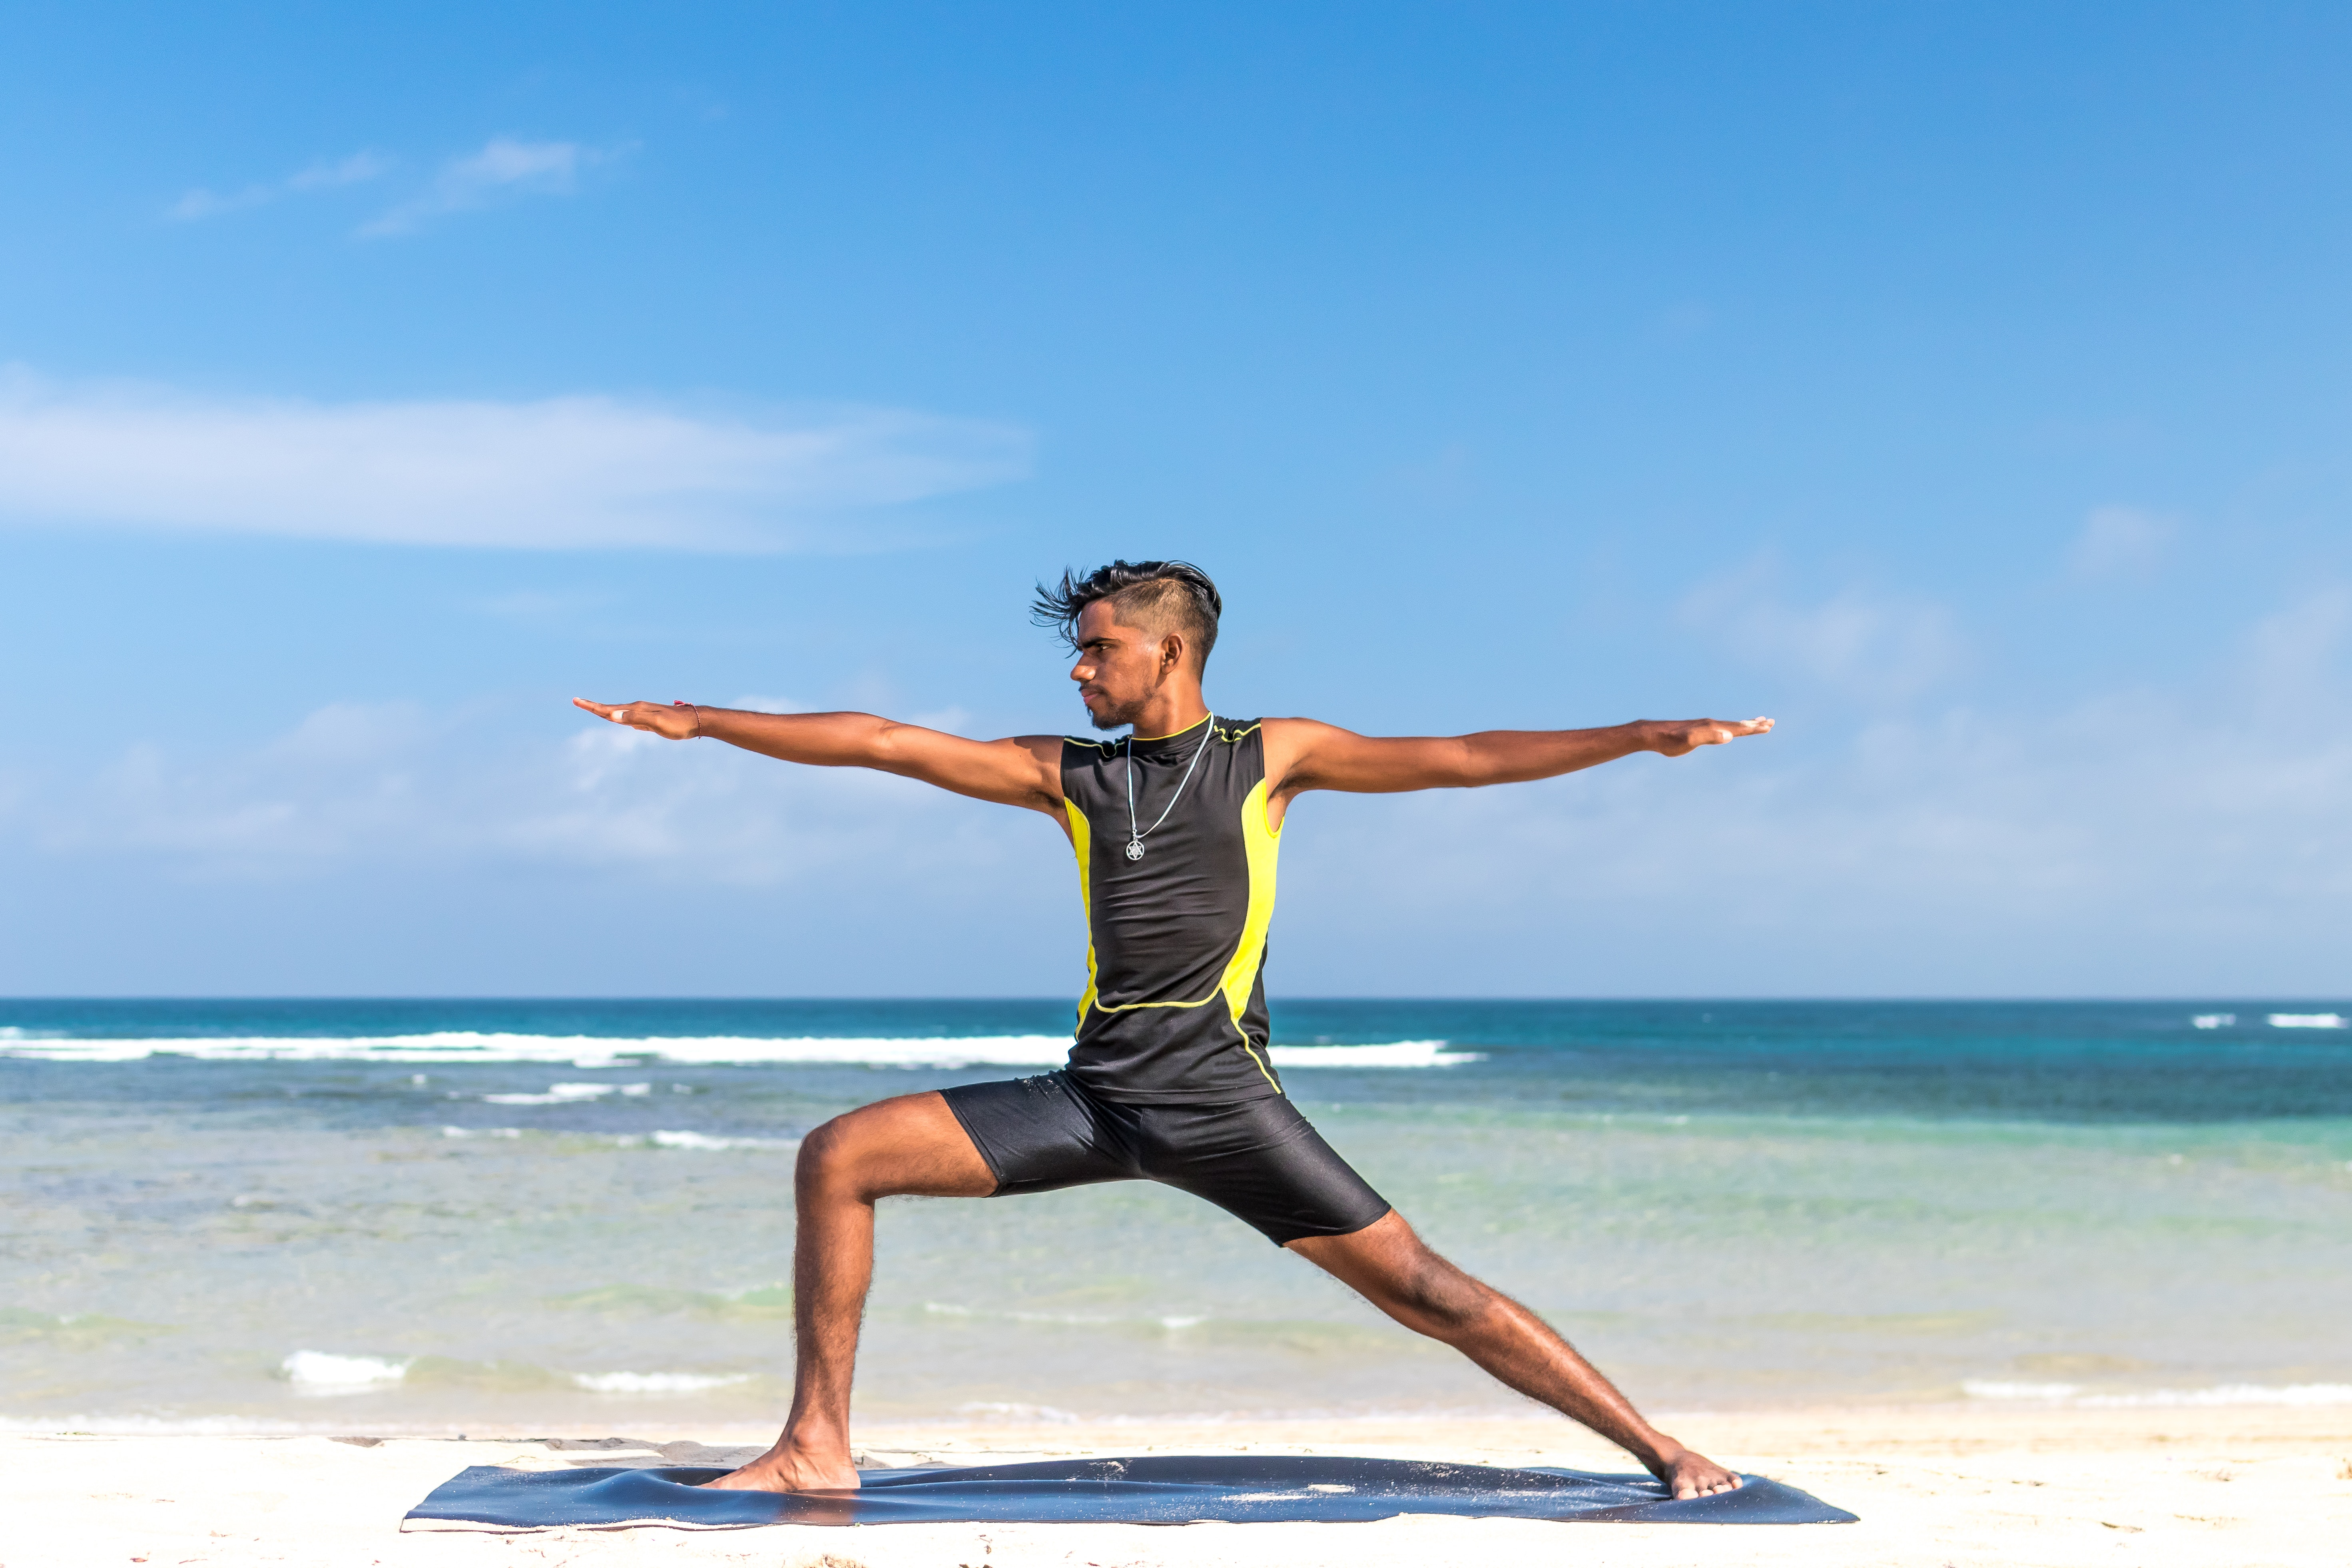 Man in Sleeveless Wet Suit Doing Some Aerobics at the Beach, Adult, Sea, Person, Pose, HQ Photo